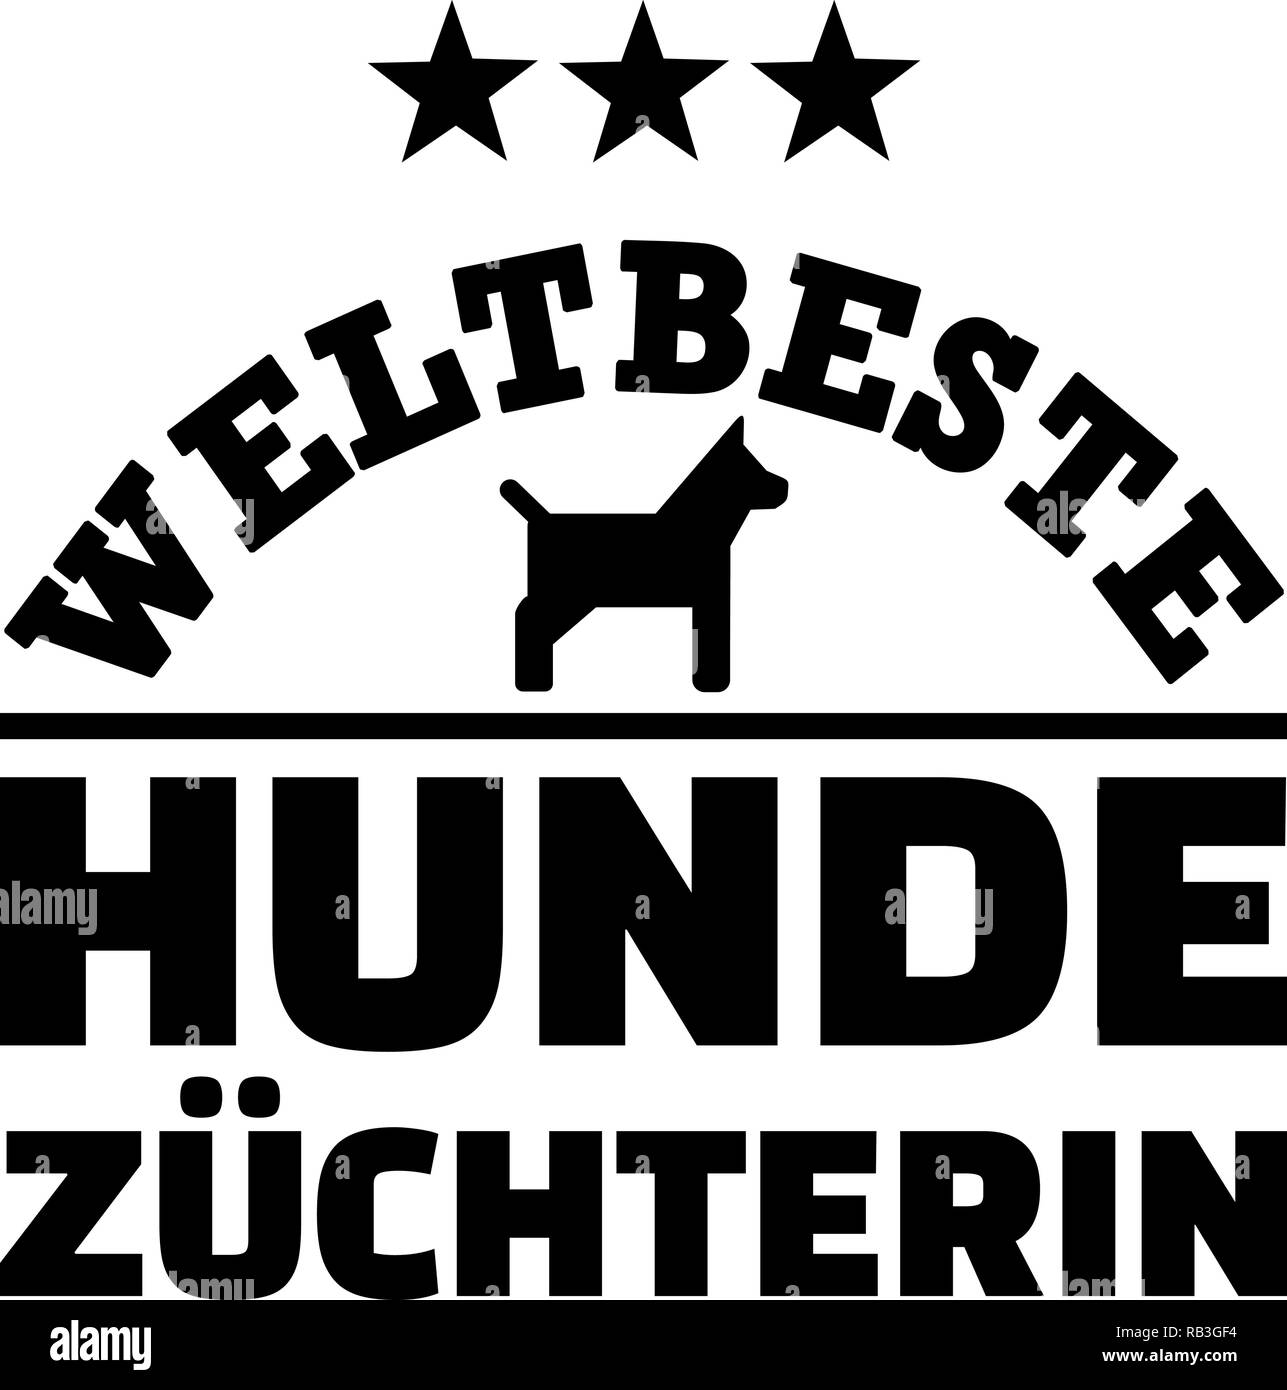 Worlds best female dog breeder german with dog silhouette - Stock Image